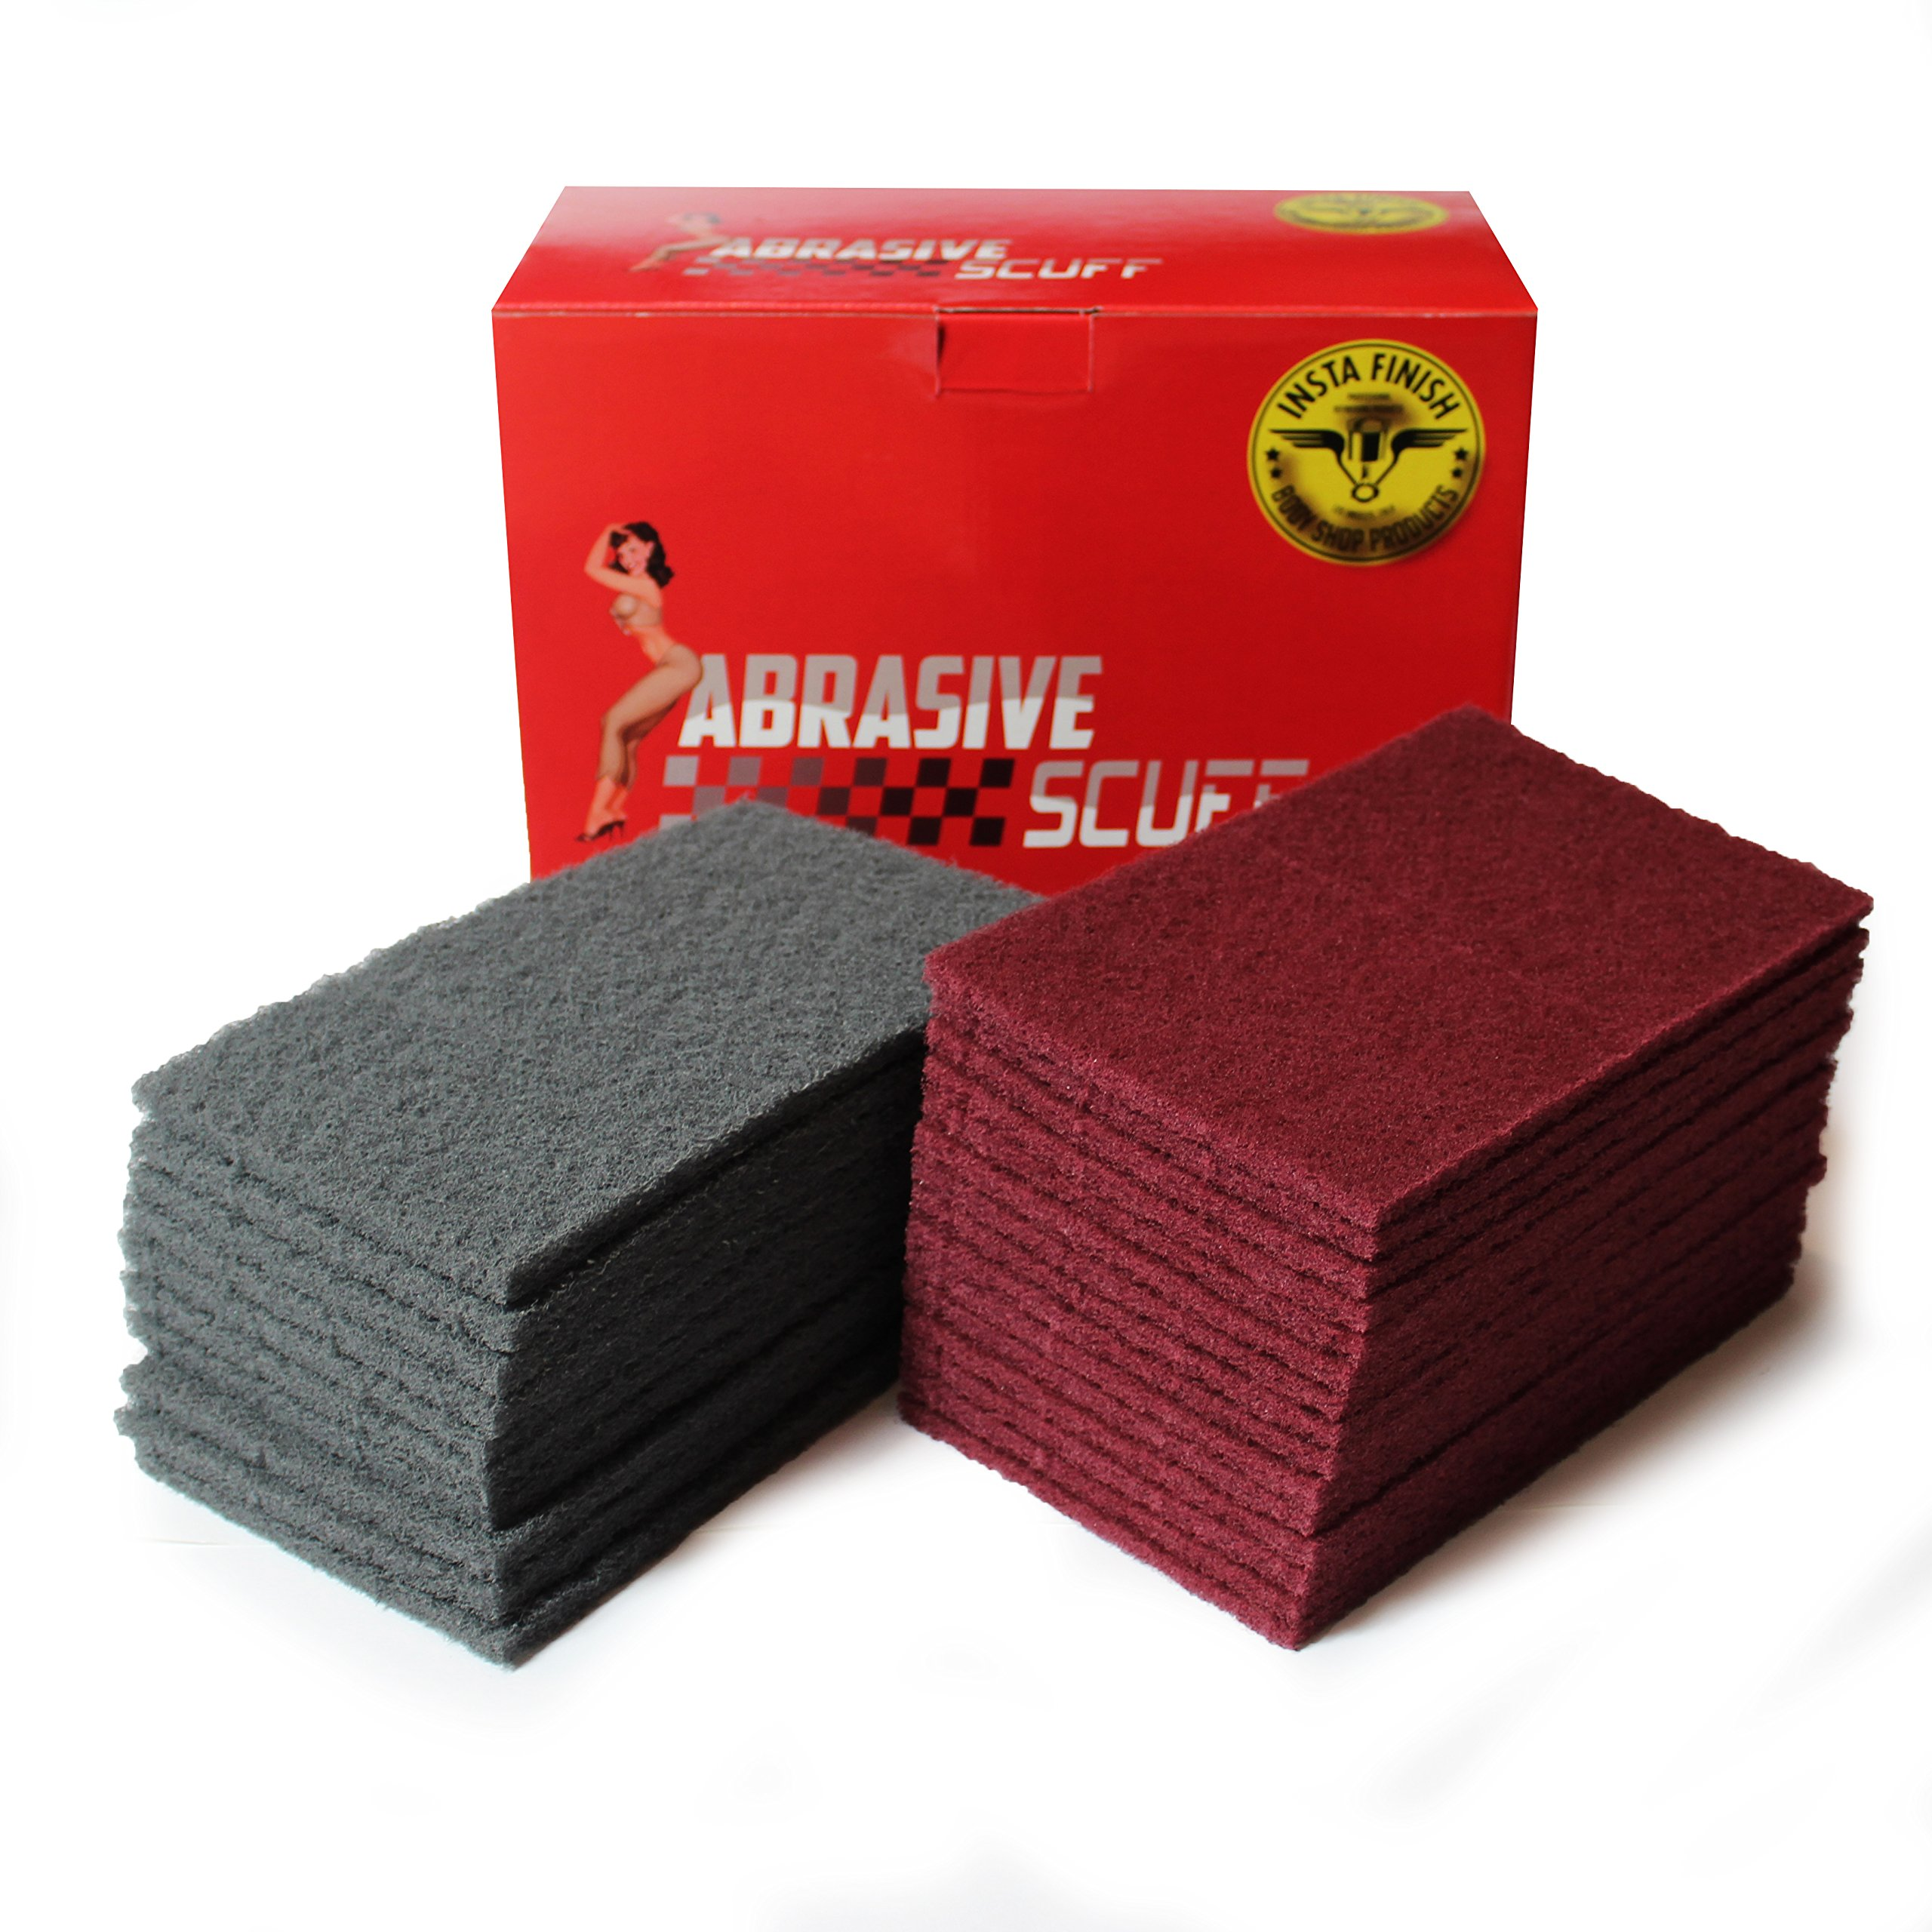 Insta Finish Rectangle Scuff Pads - 6''x9'' Size - 15 Maroon, 10 Gray (25 Pieces Total)